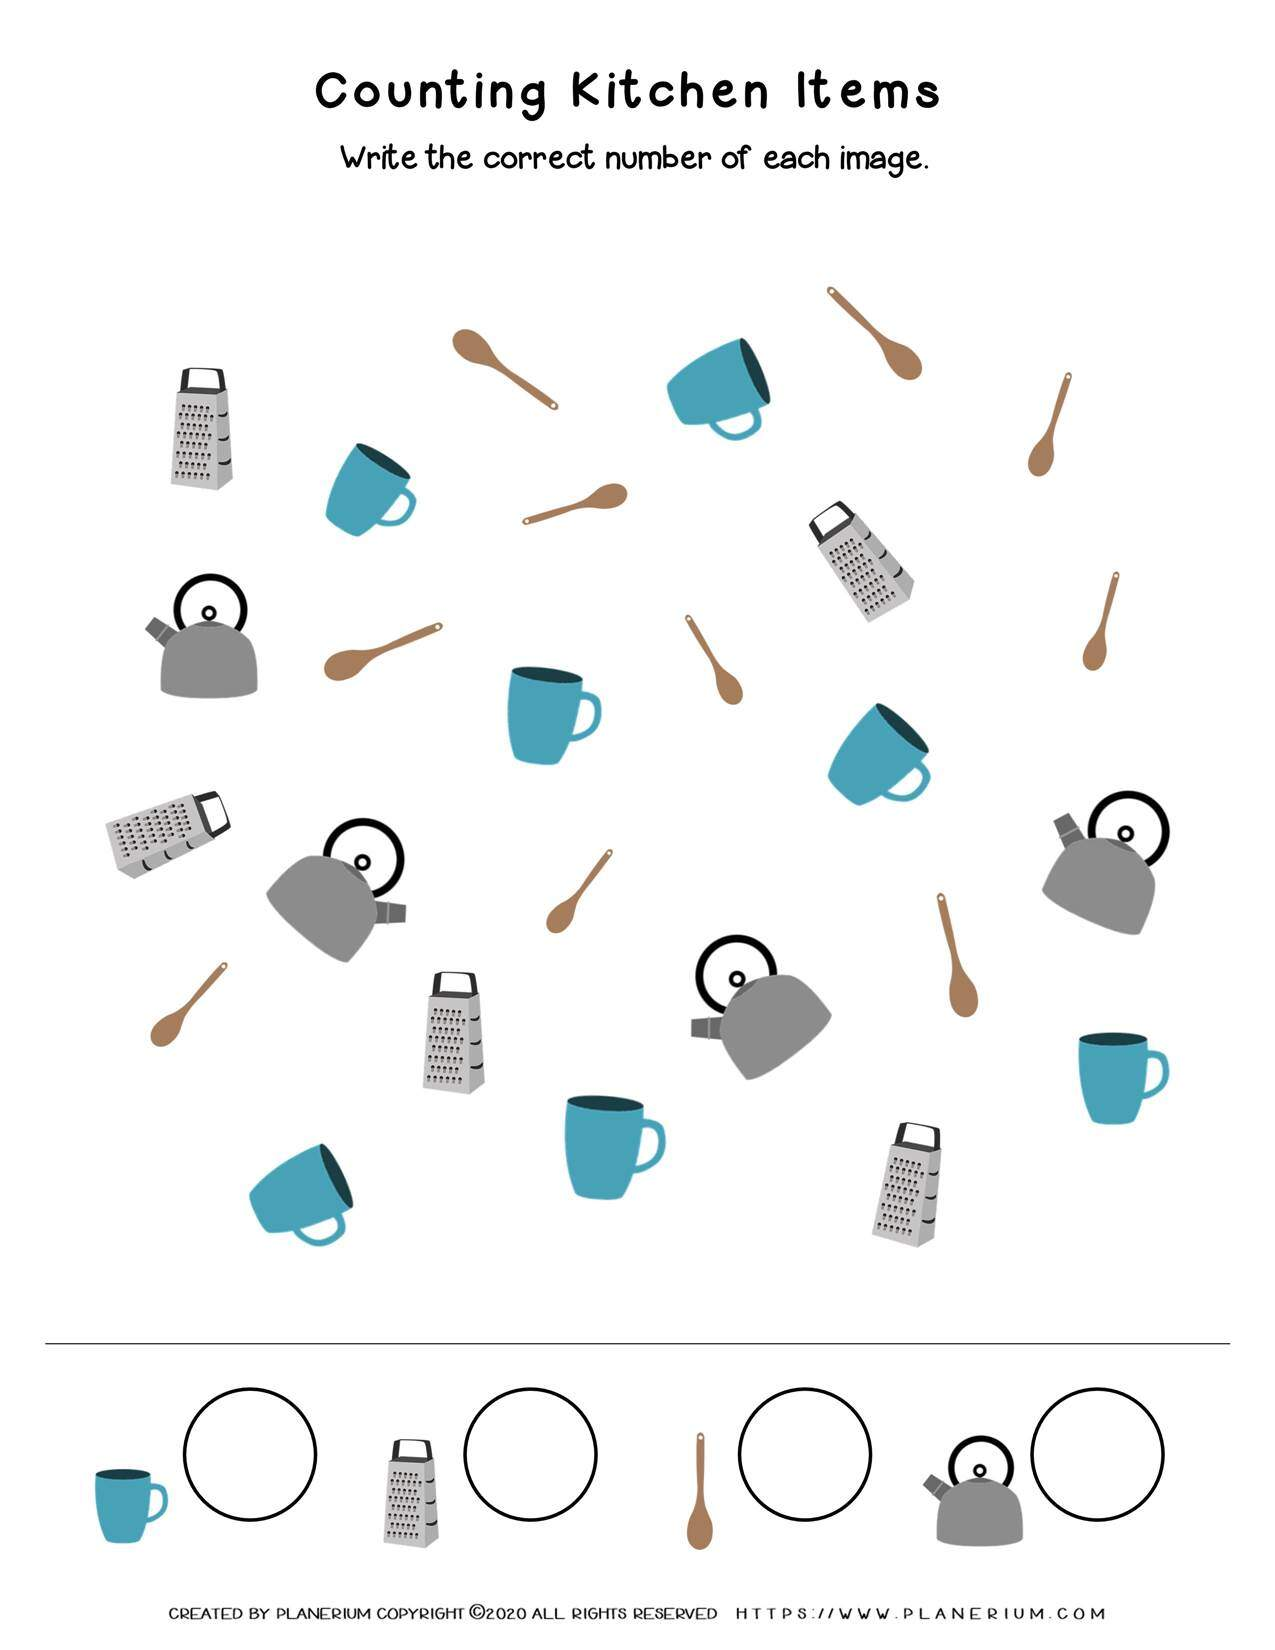 My Home - Worksheet - Counting Kitchen Items   Planerium